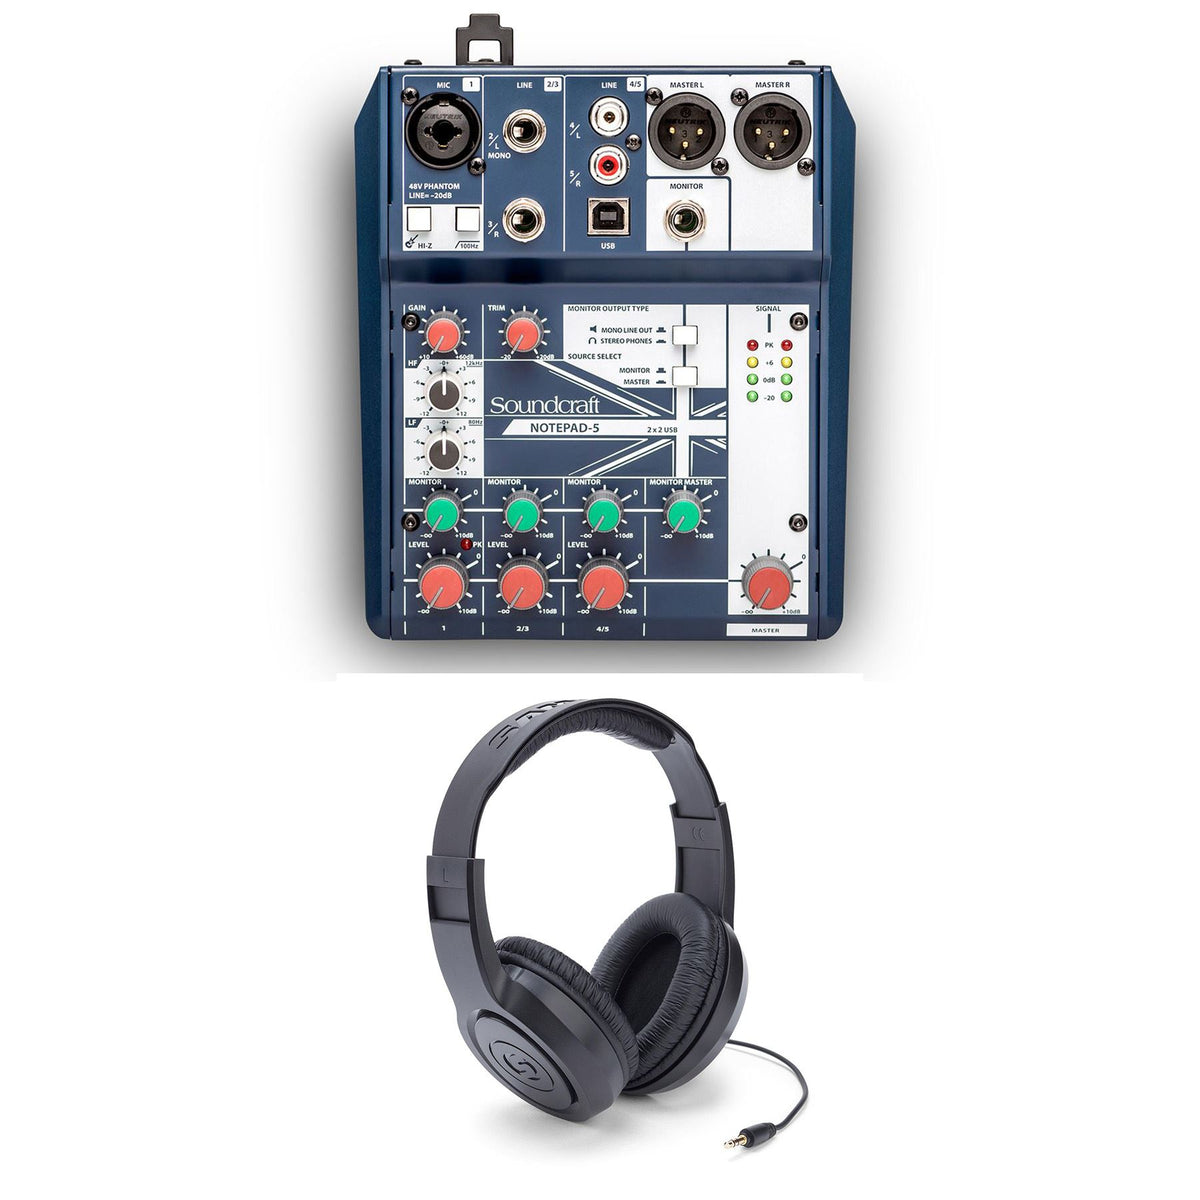 Soundcraft Notepad 5 Mixer w/ Samson SR350 Headphones Bundle